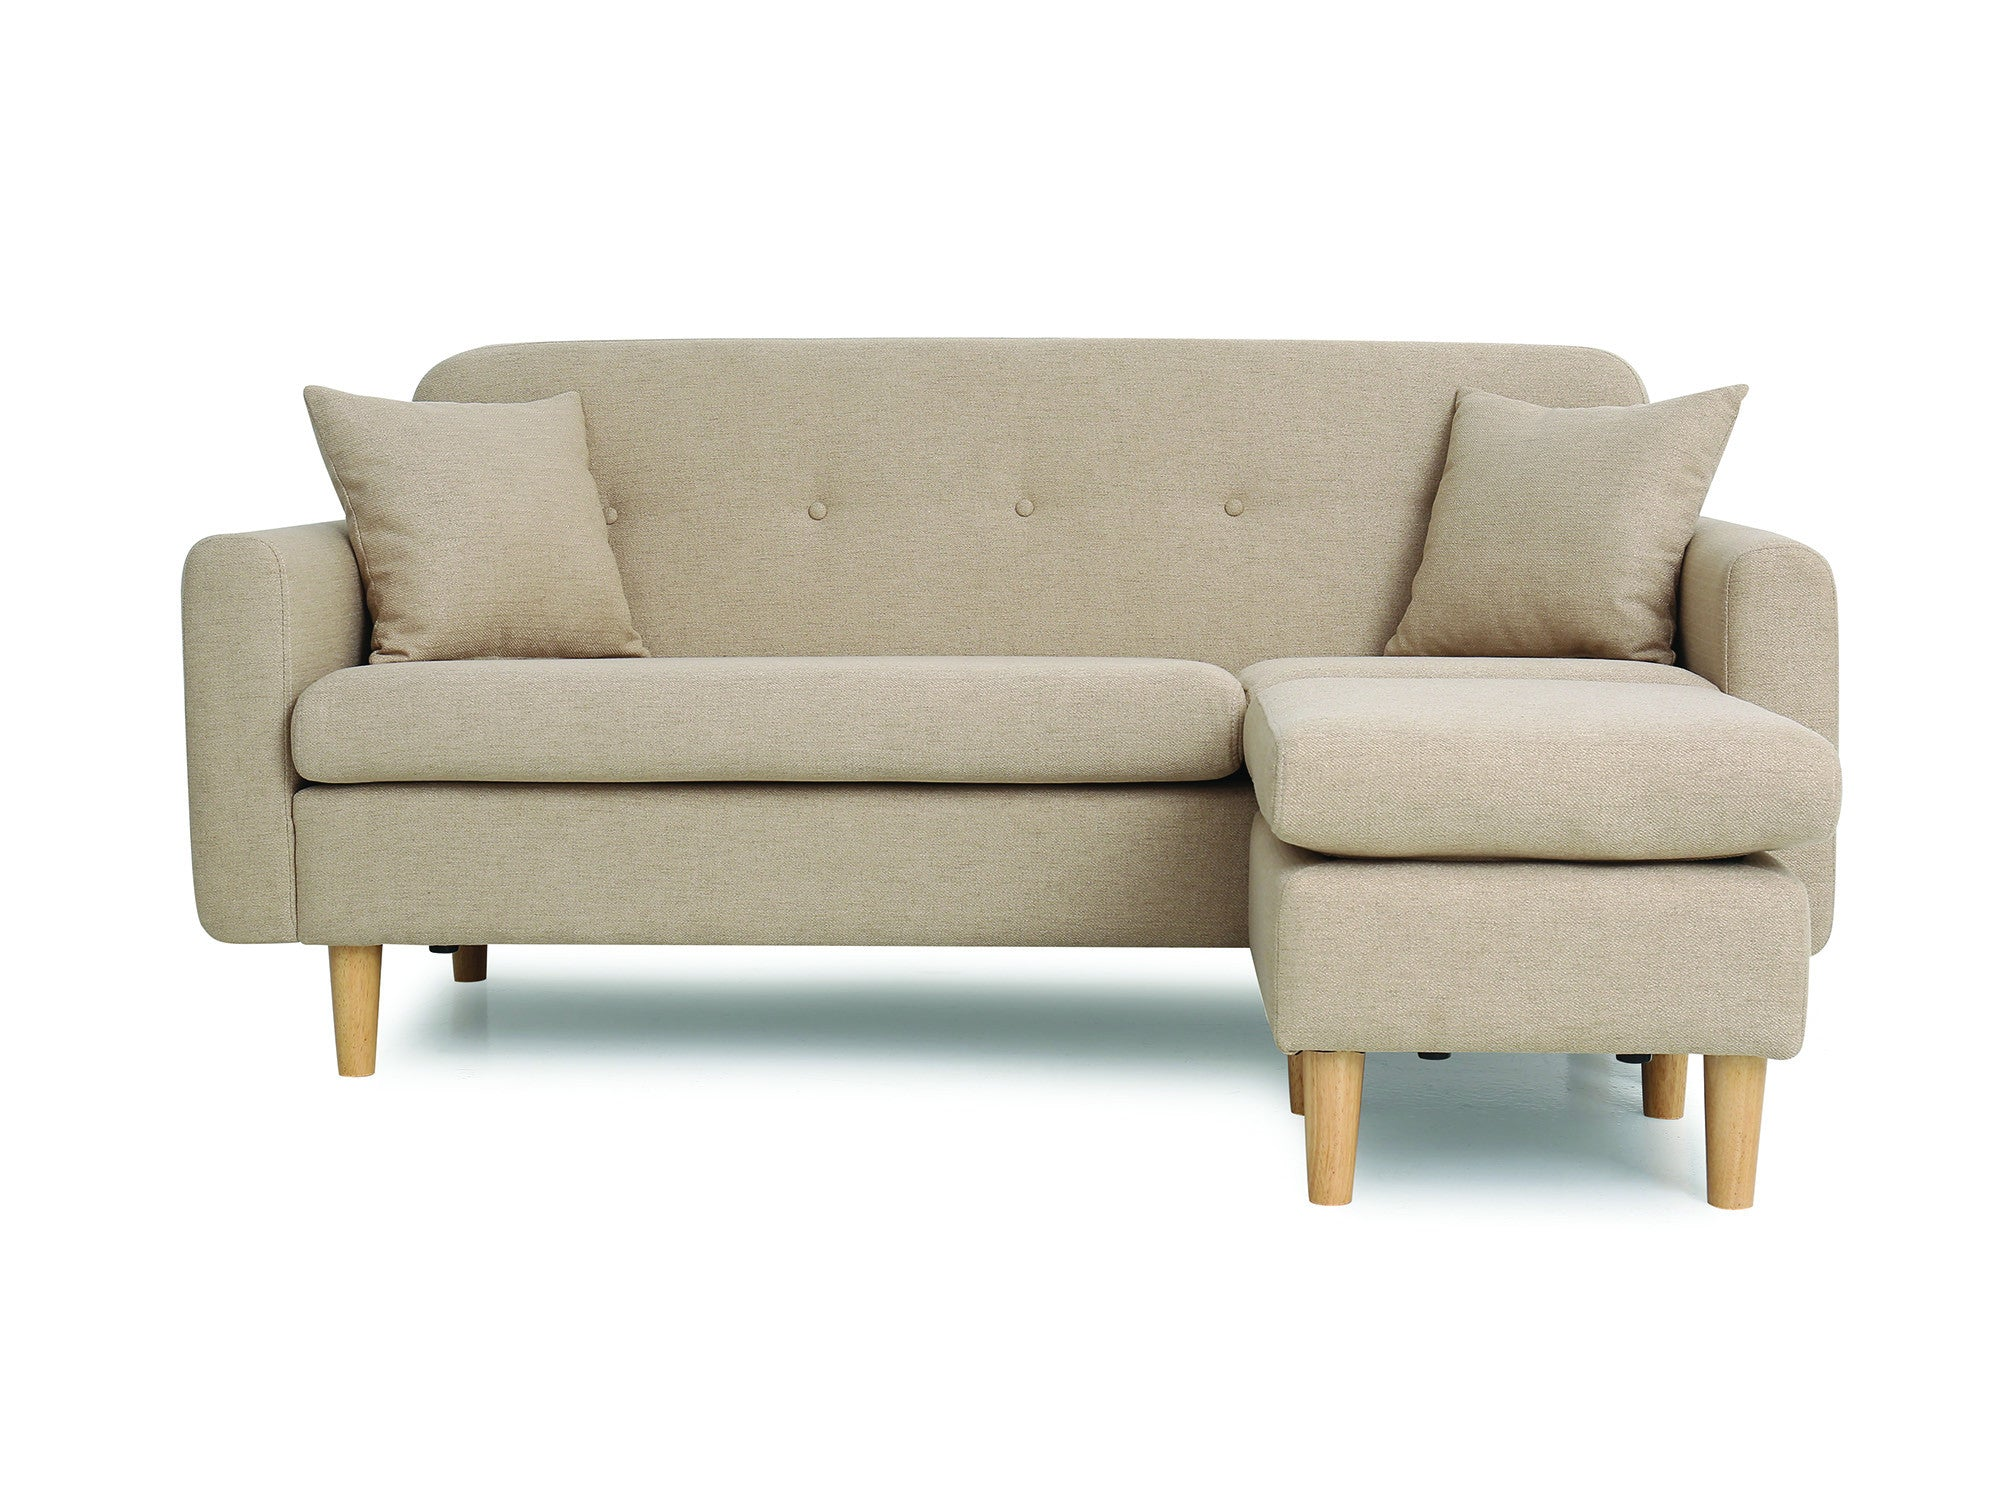 Newell furniture marianne 3 seater sectional beige for Meubles newell montreal